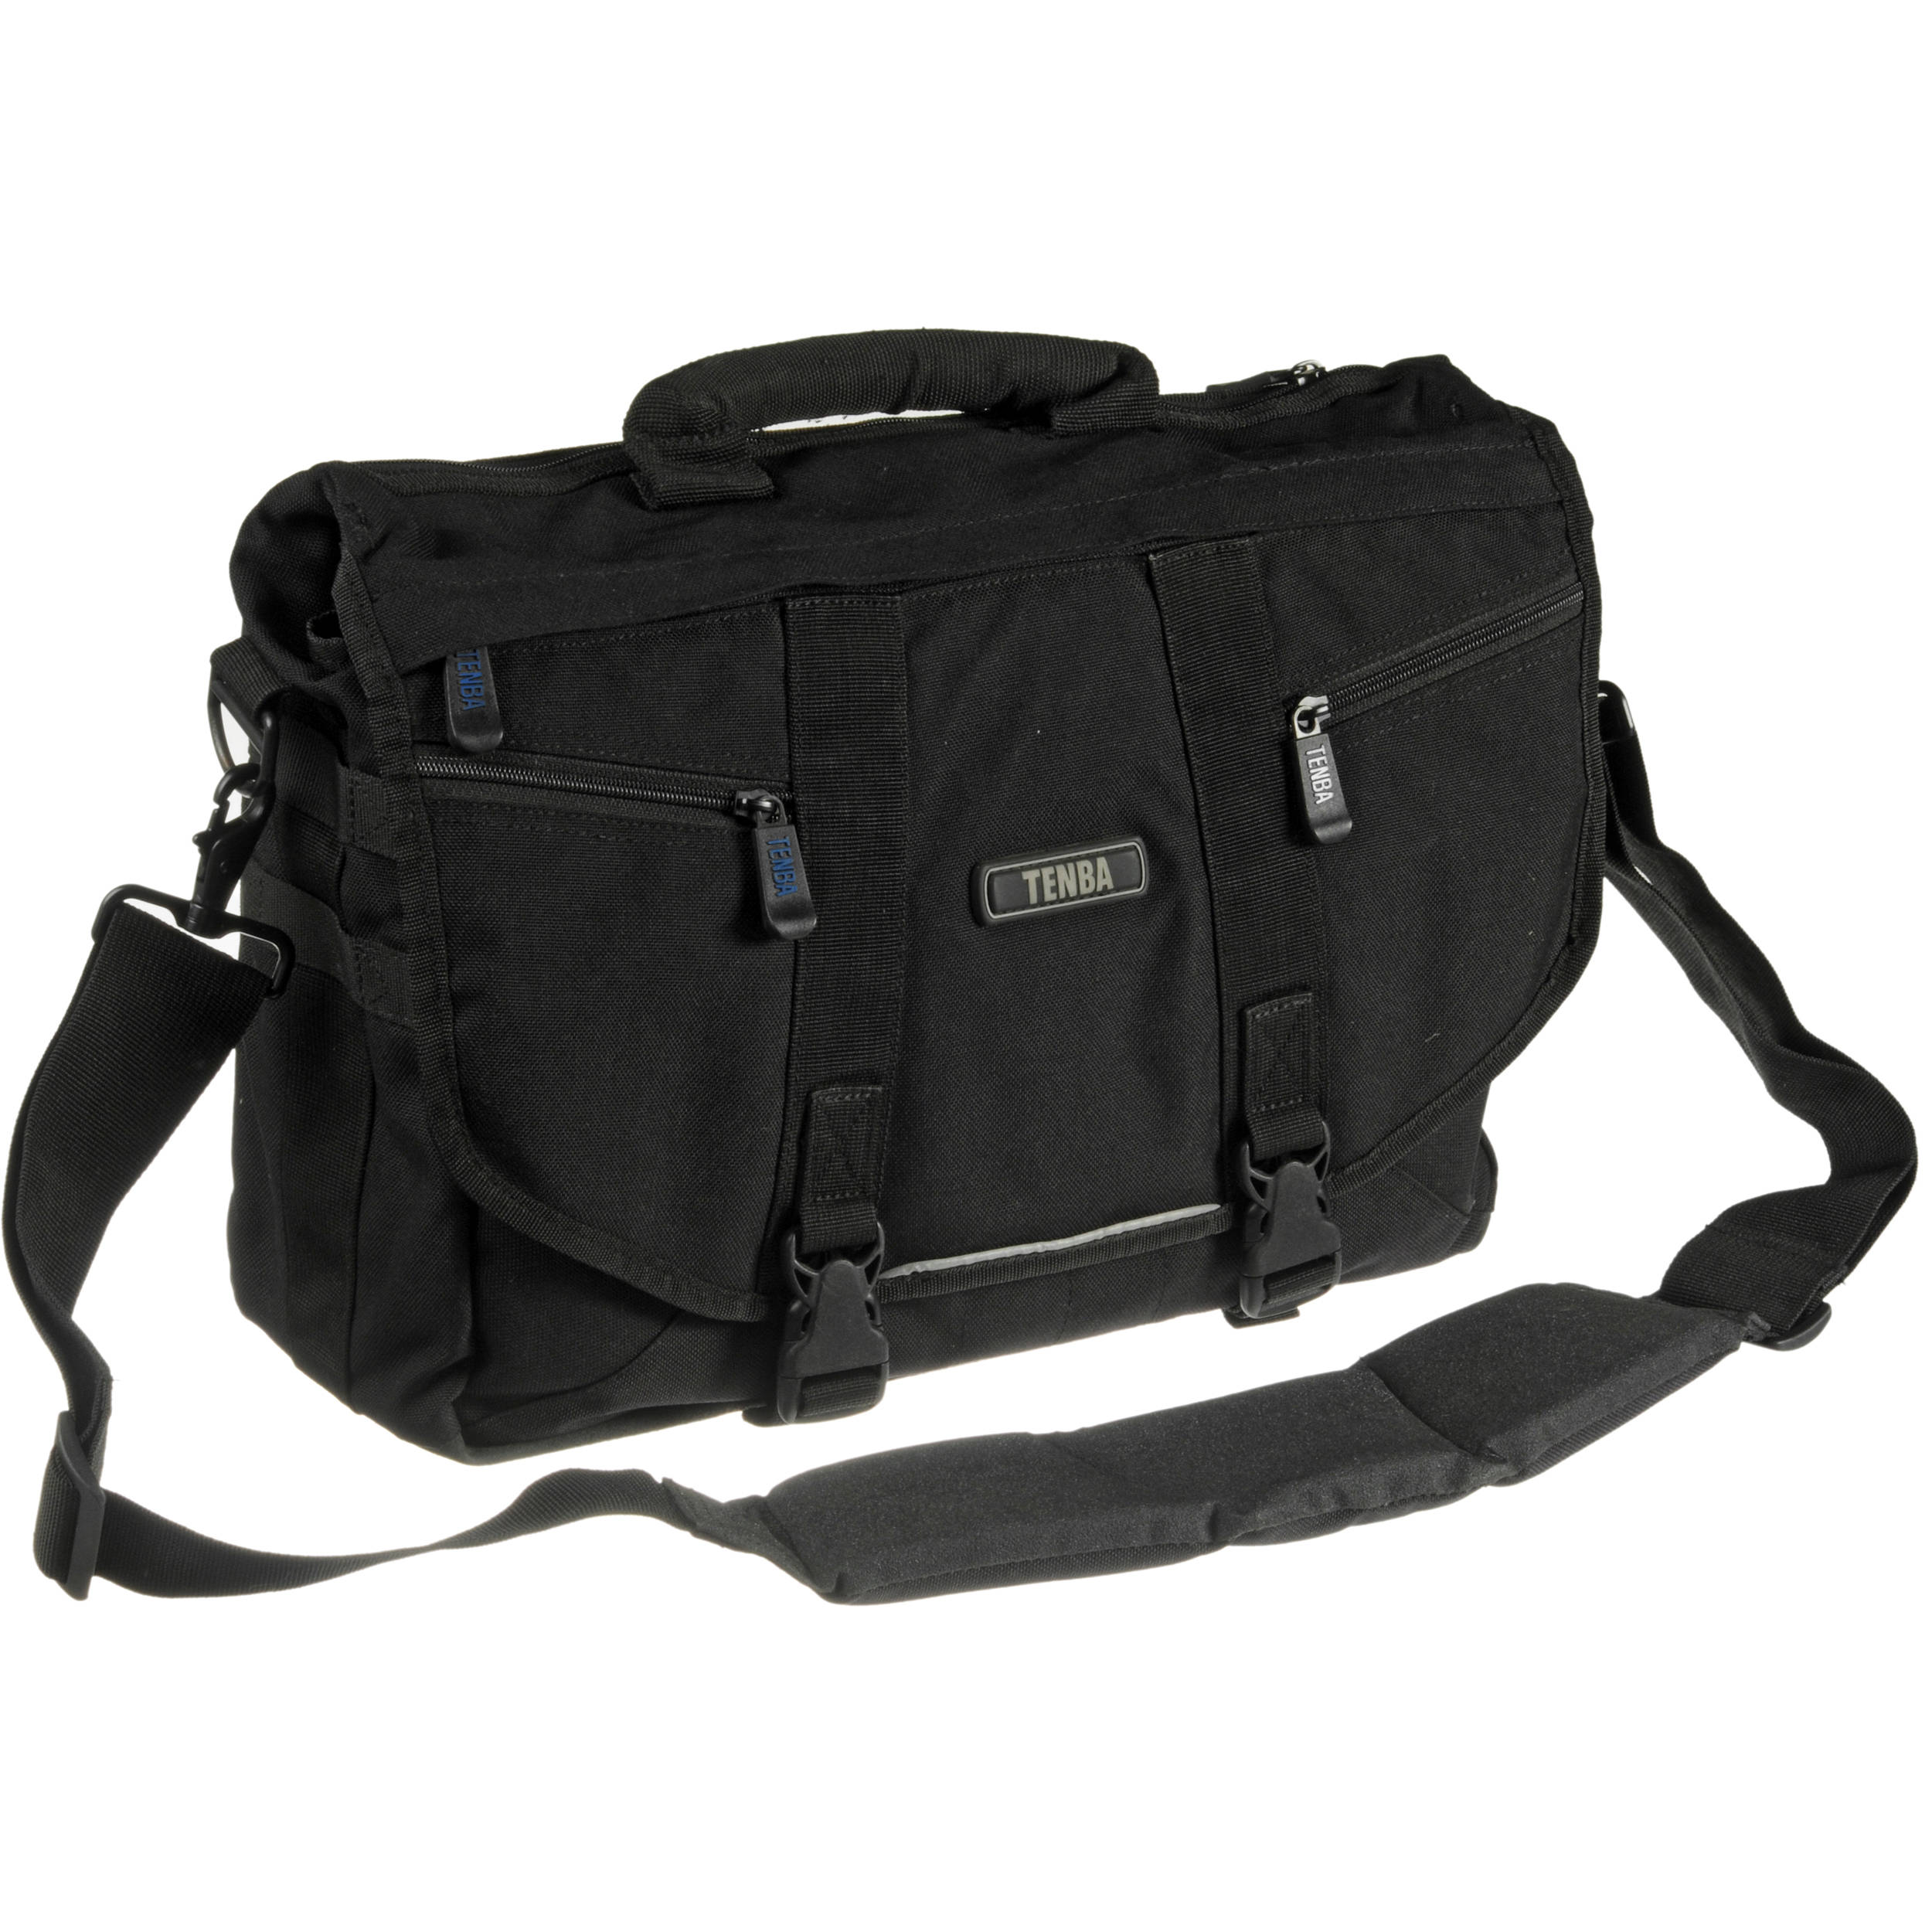 Tenba Messenger: Large Photo/Laptop Bag (Black) 638-231 B&H